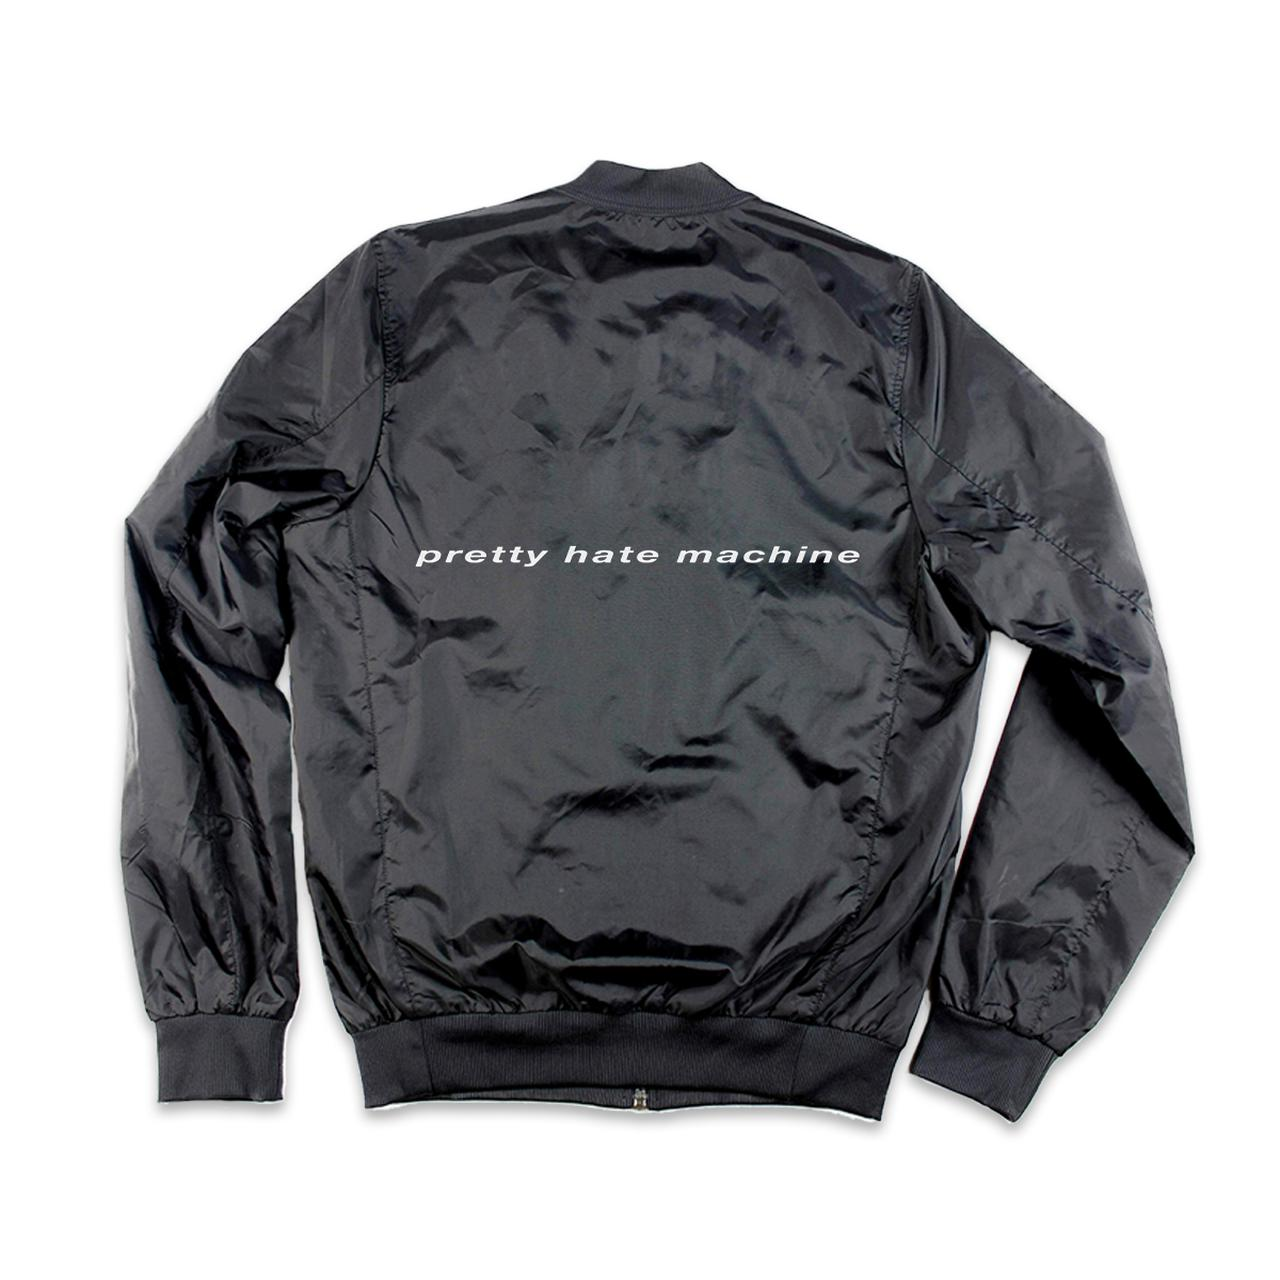 Nine Inch Nails PRETTY HATE MACHINE BOMBER JACKET